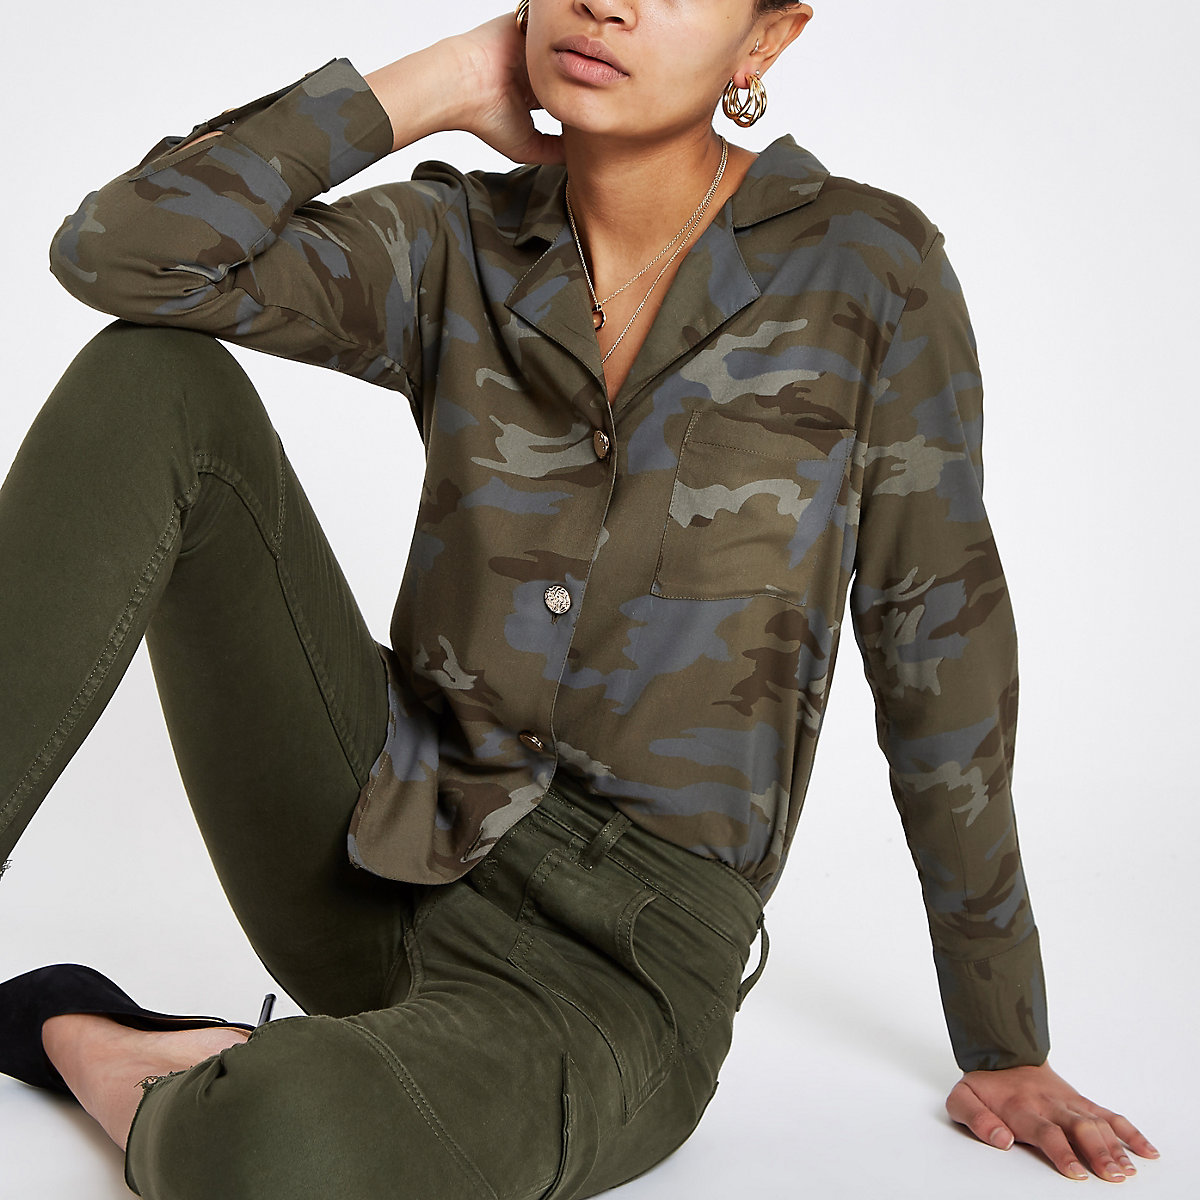 Green camo long sleeve shirt